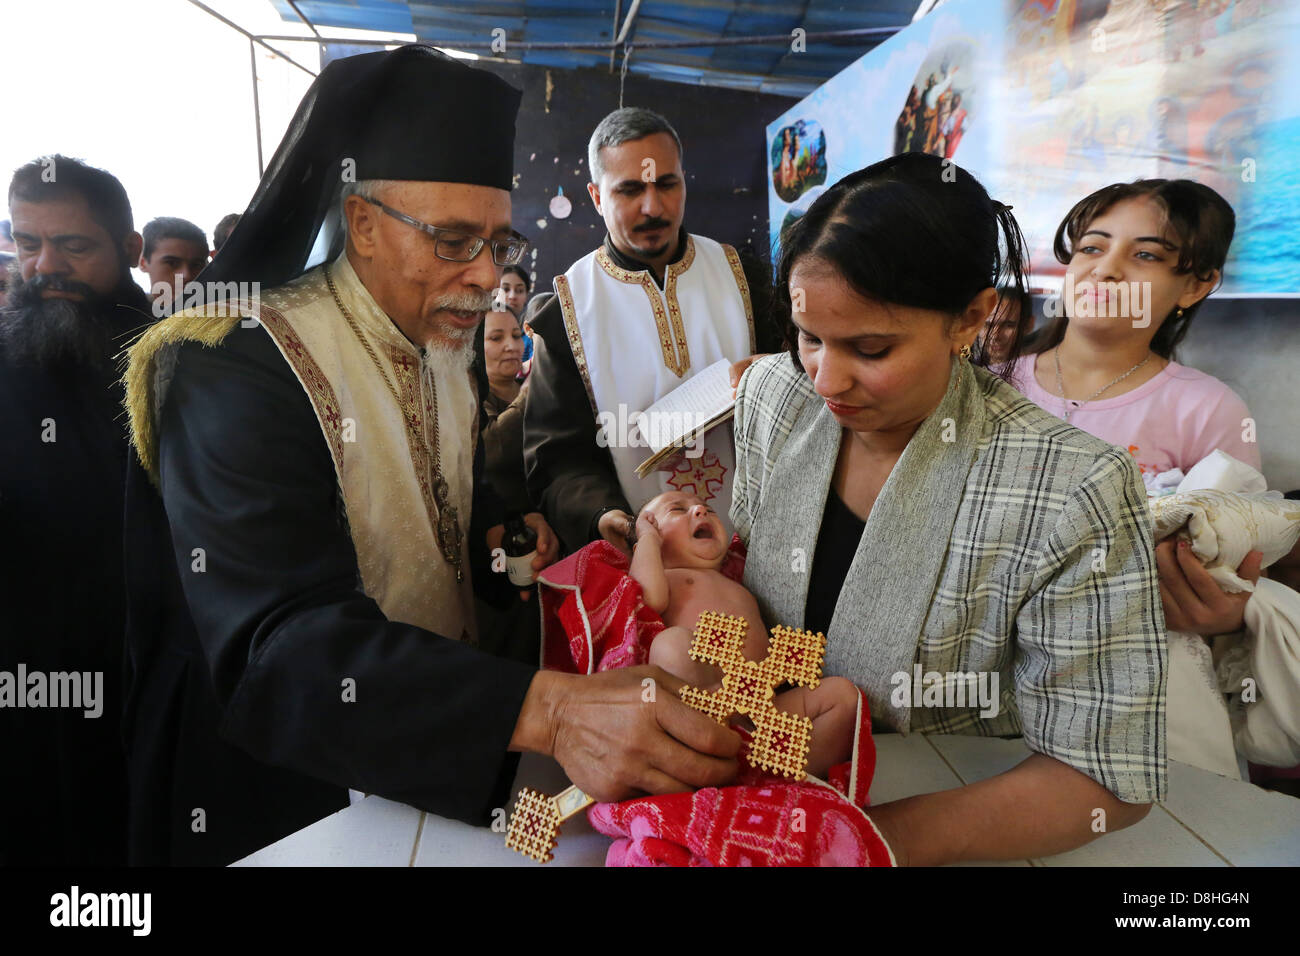 baptism of a baby by catholic coptic bishop KYRILLOS WILLIAM of Asyut diocese, Egypt - Stock Image